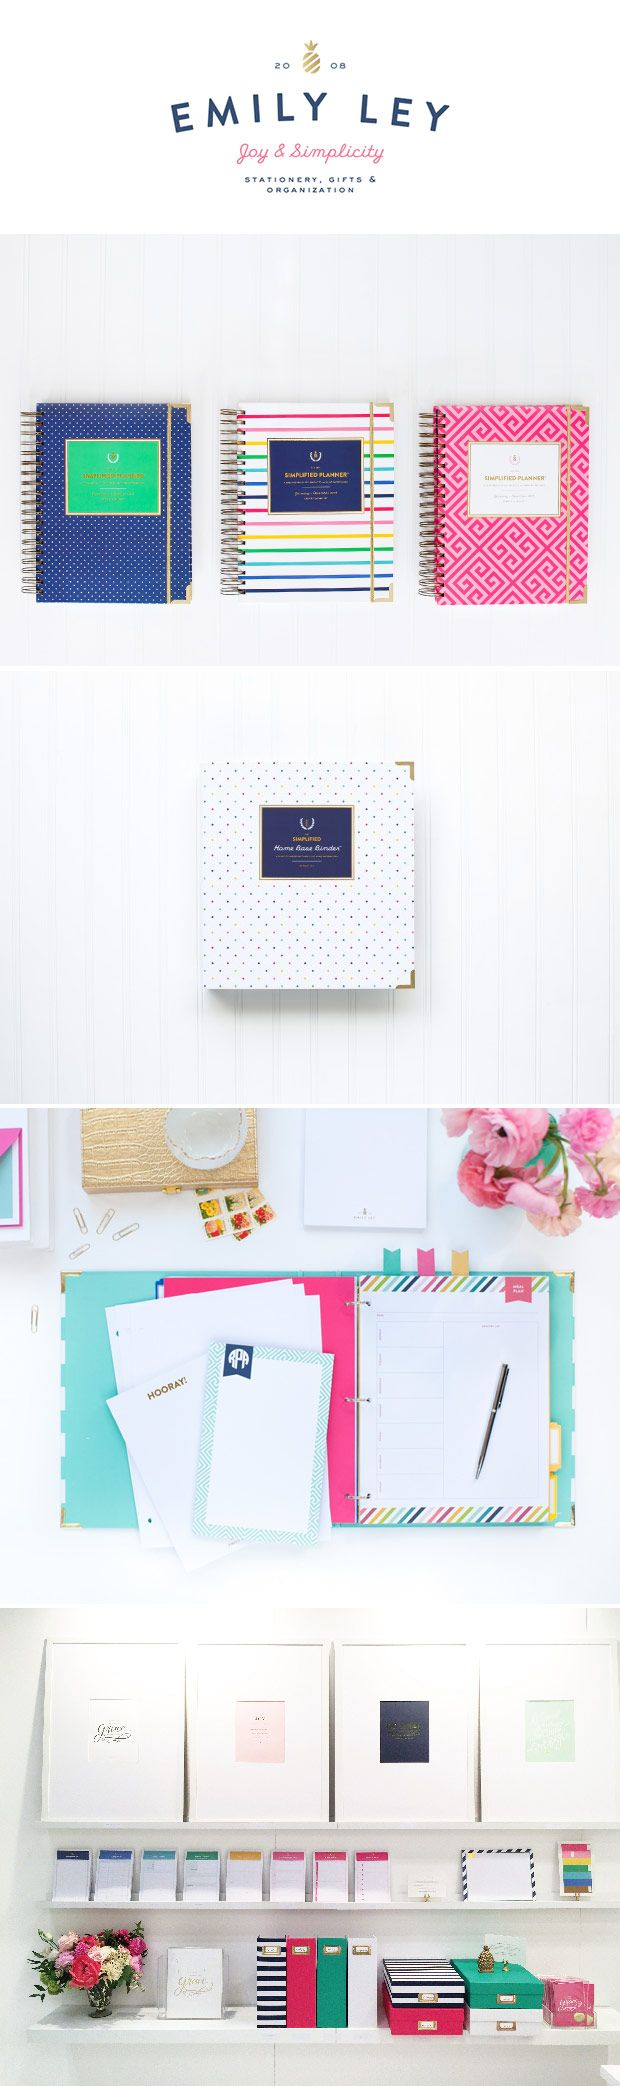 Emily Ley Stationery Gifts Organization